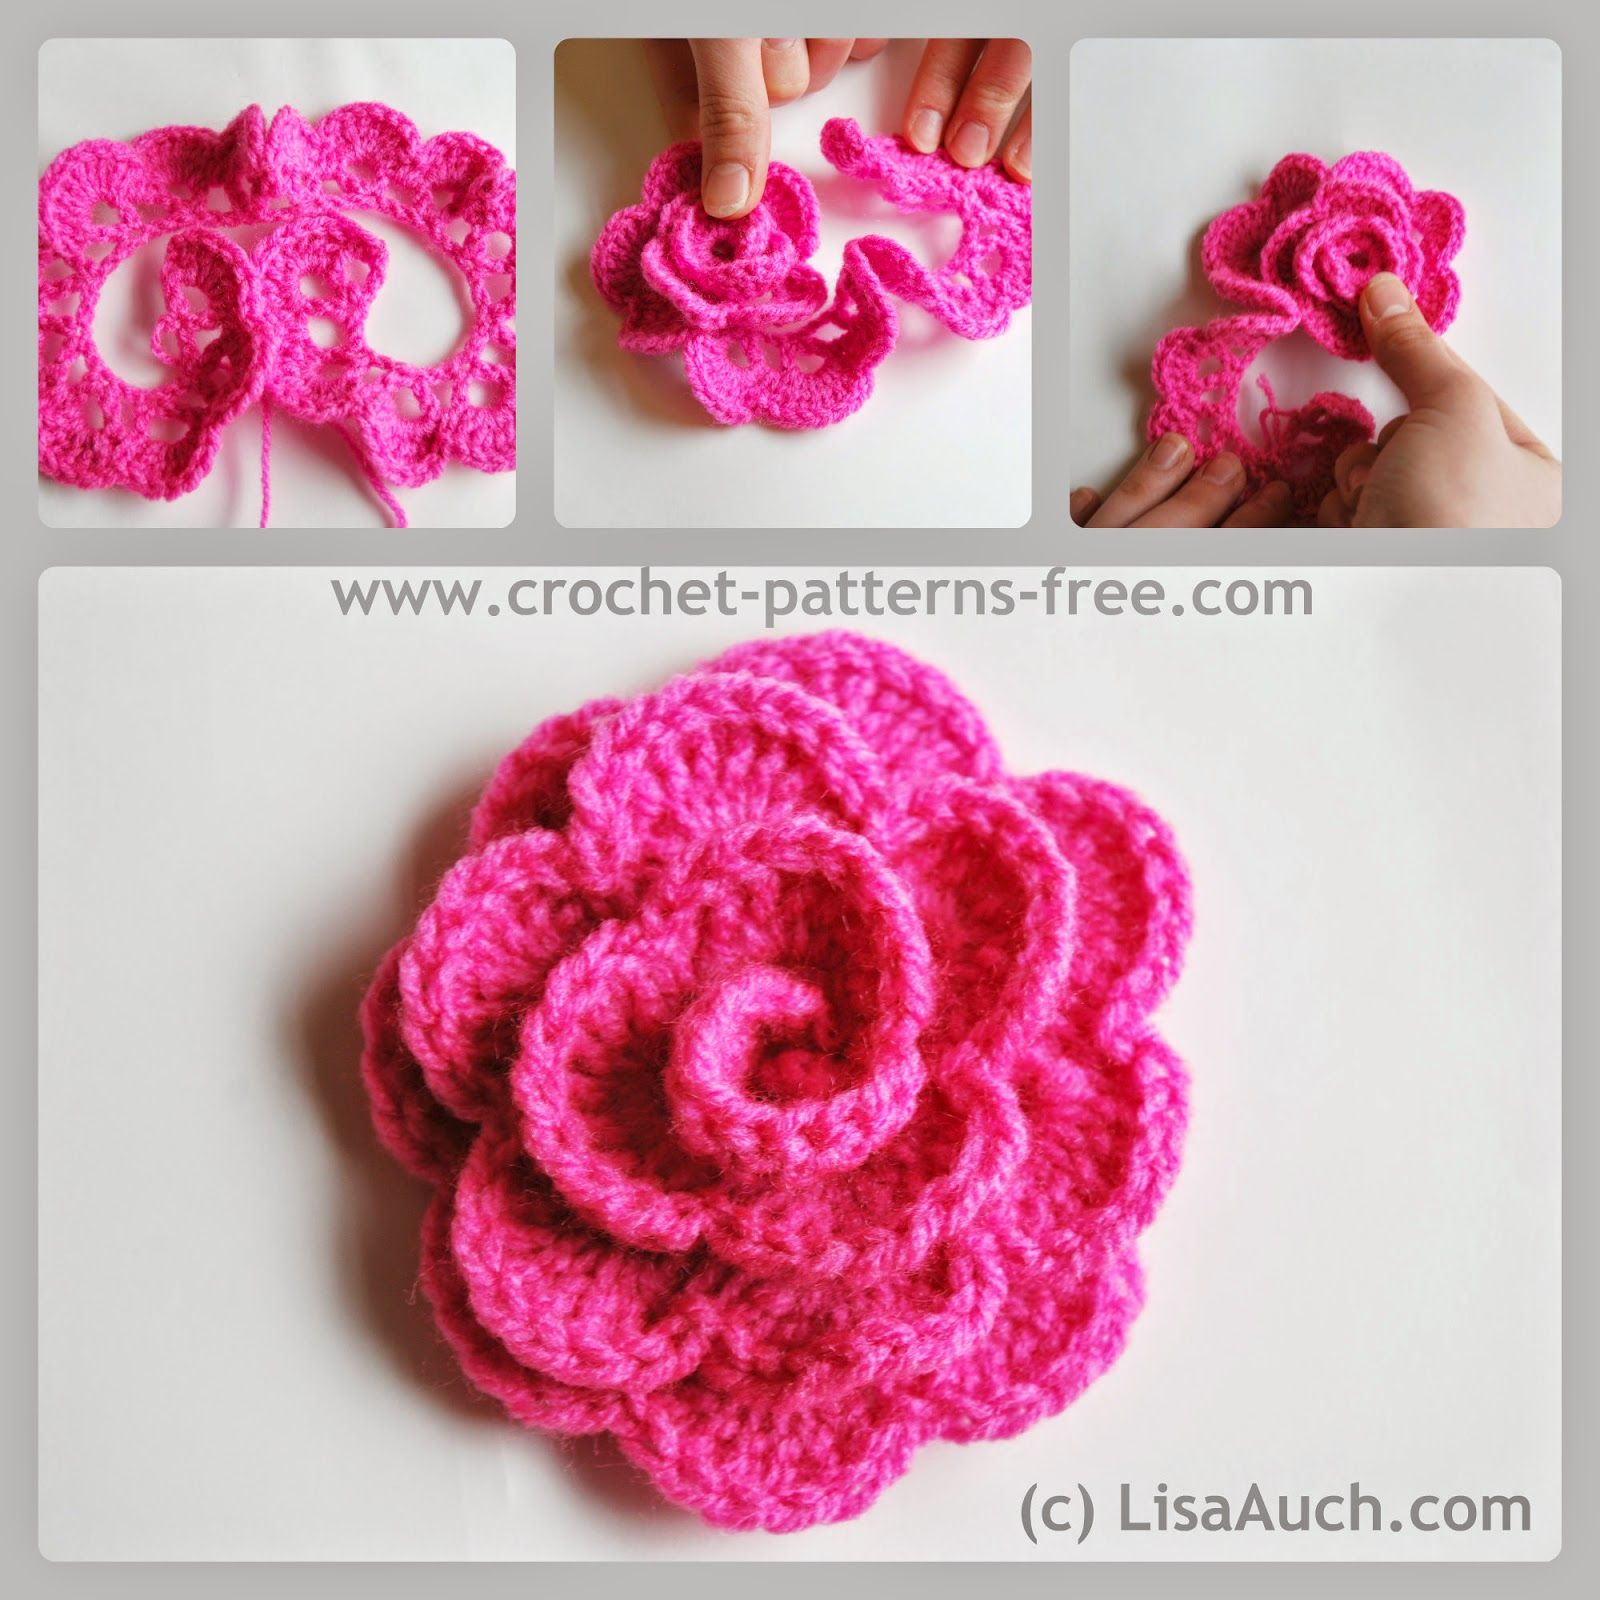 Free Crochet Flower Patterns Crochet Crochet Flowers Crochet